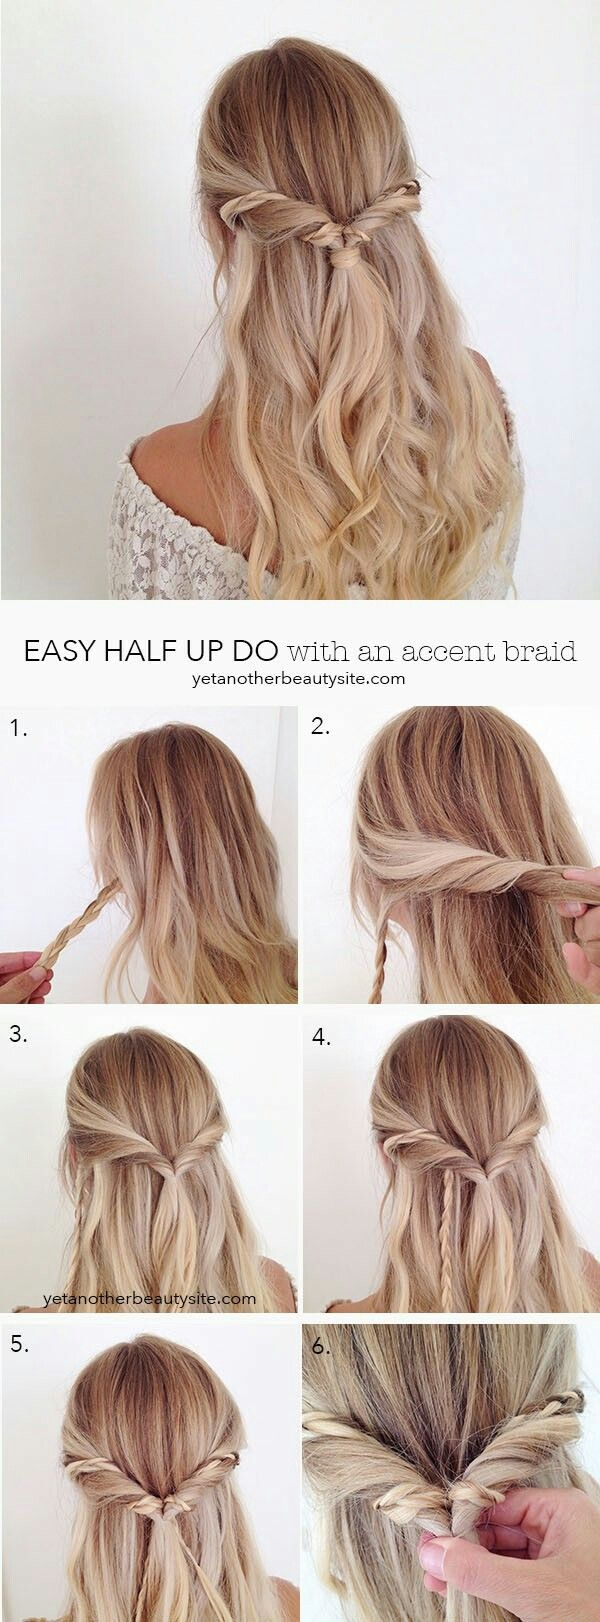 Half up with braid detail cheer pinterest detail hair style